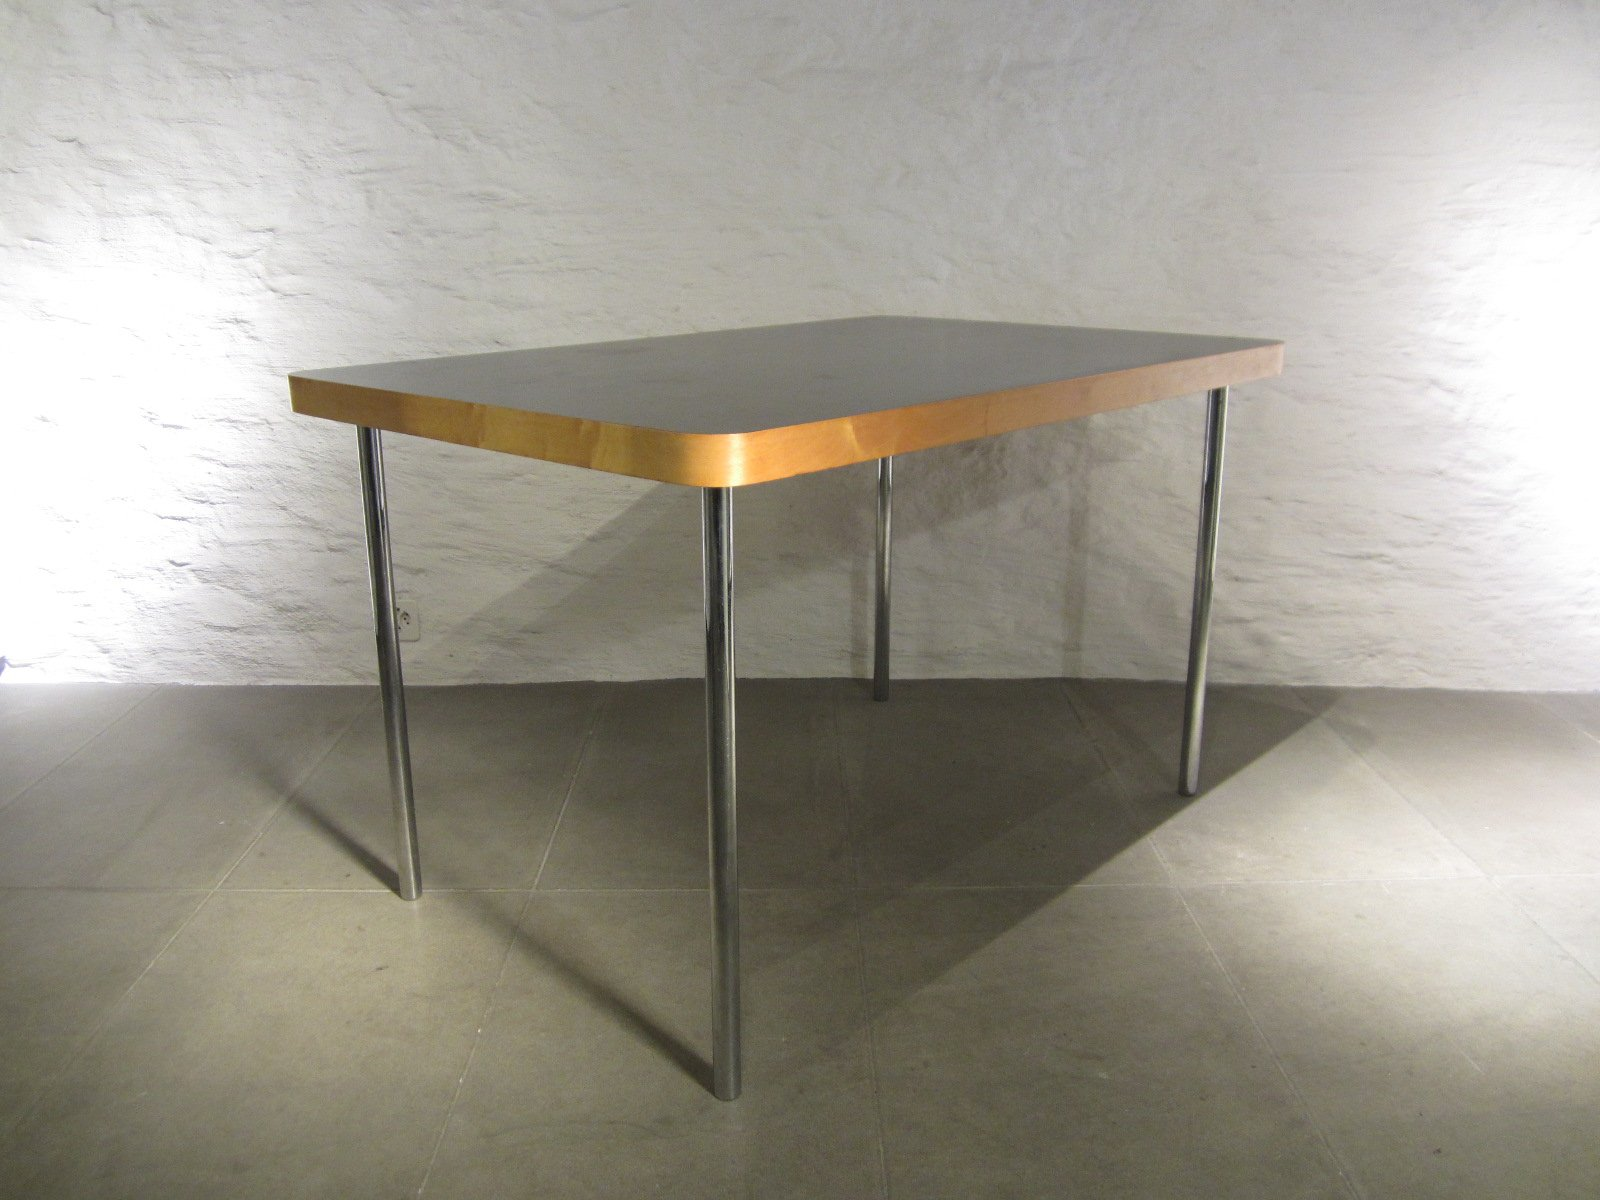 Small Vintage Dining Table by Marcel Breuer for Embru Wohnbedarf